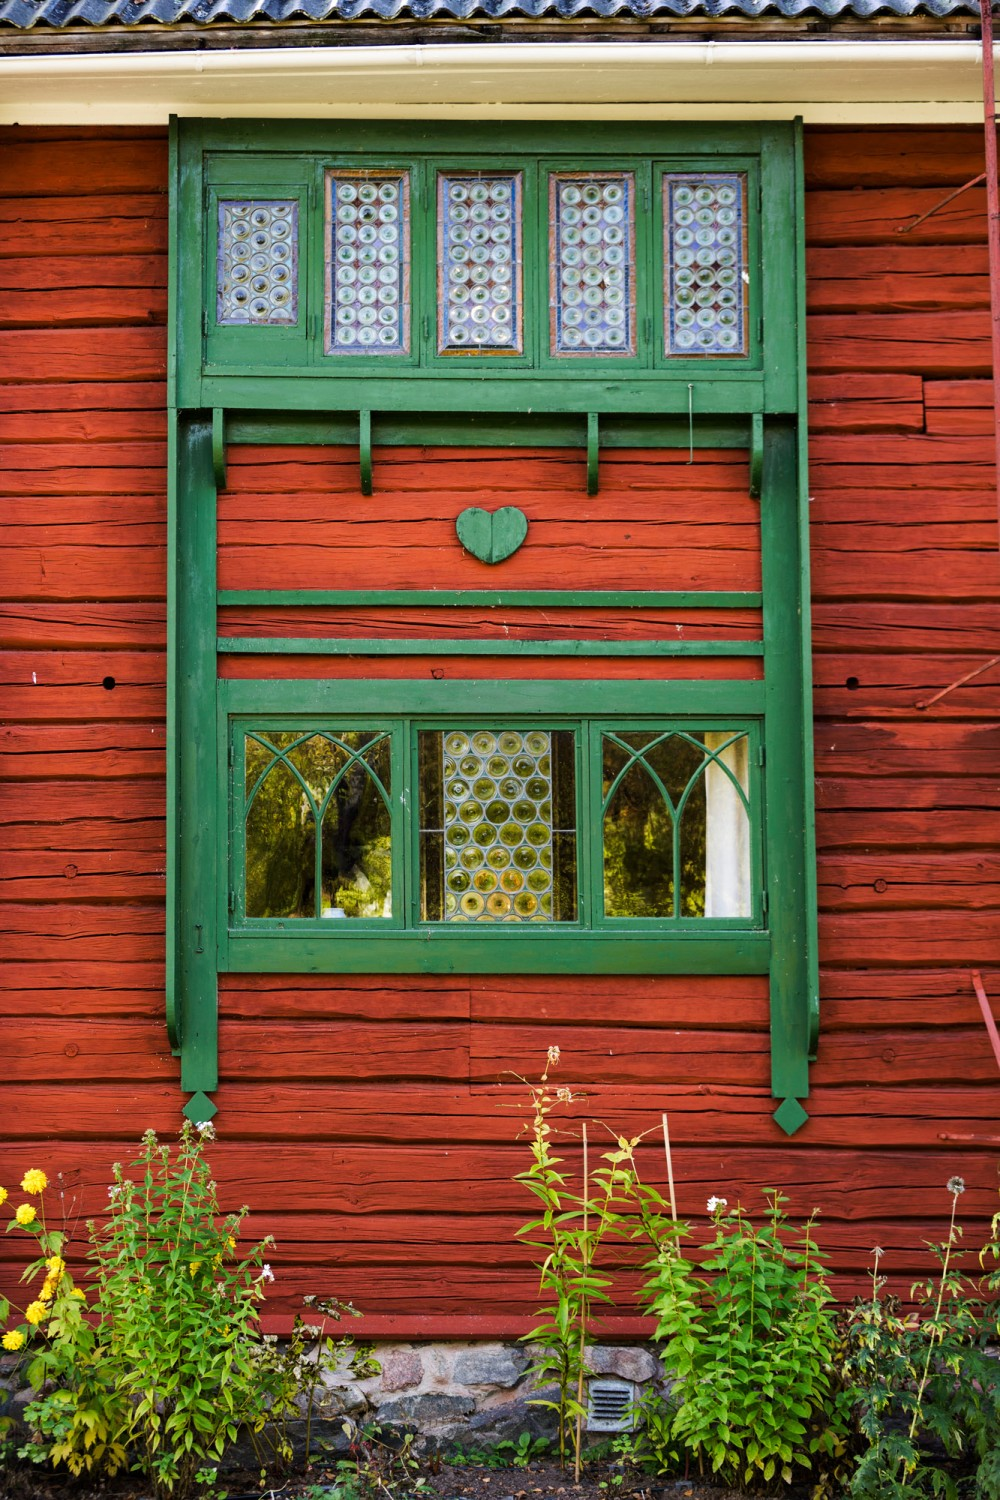 The home of Carl Larson is equally beautiful on the outside. Leaded-glass windows framed by green decorations. The heart is a recurring symbol all over the house. – © Carl Larsson-gården